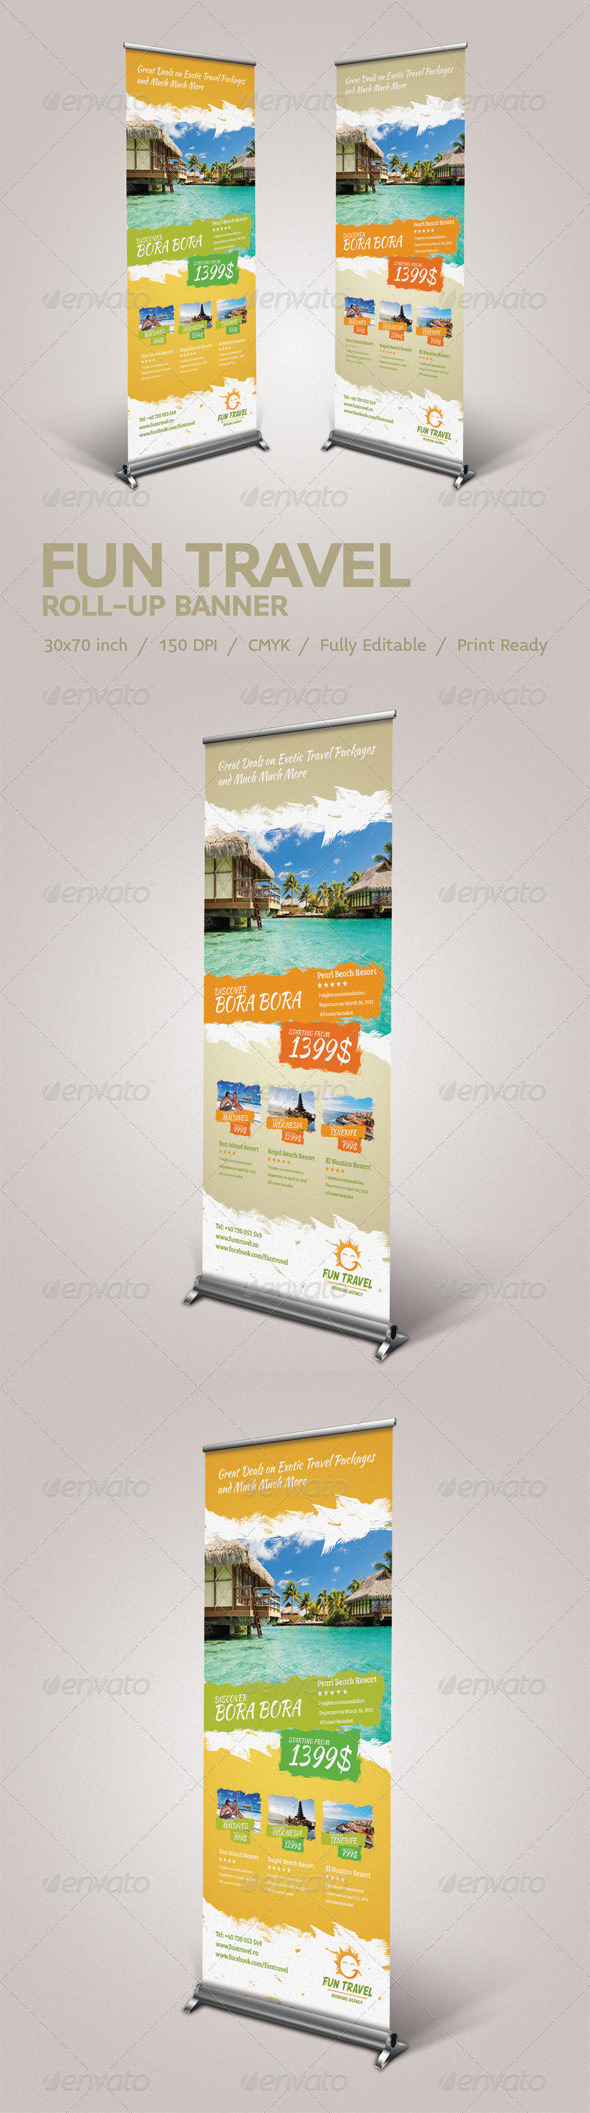 GraphicRiver Fun Travel Roll-Up Banner 4164783